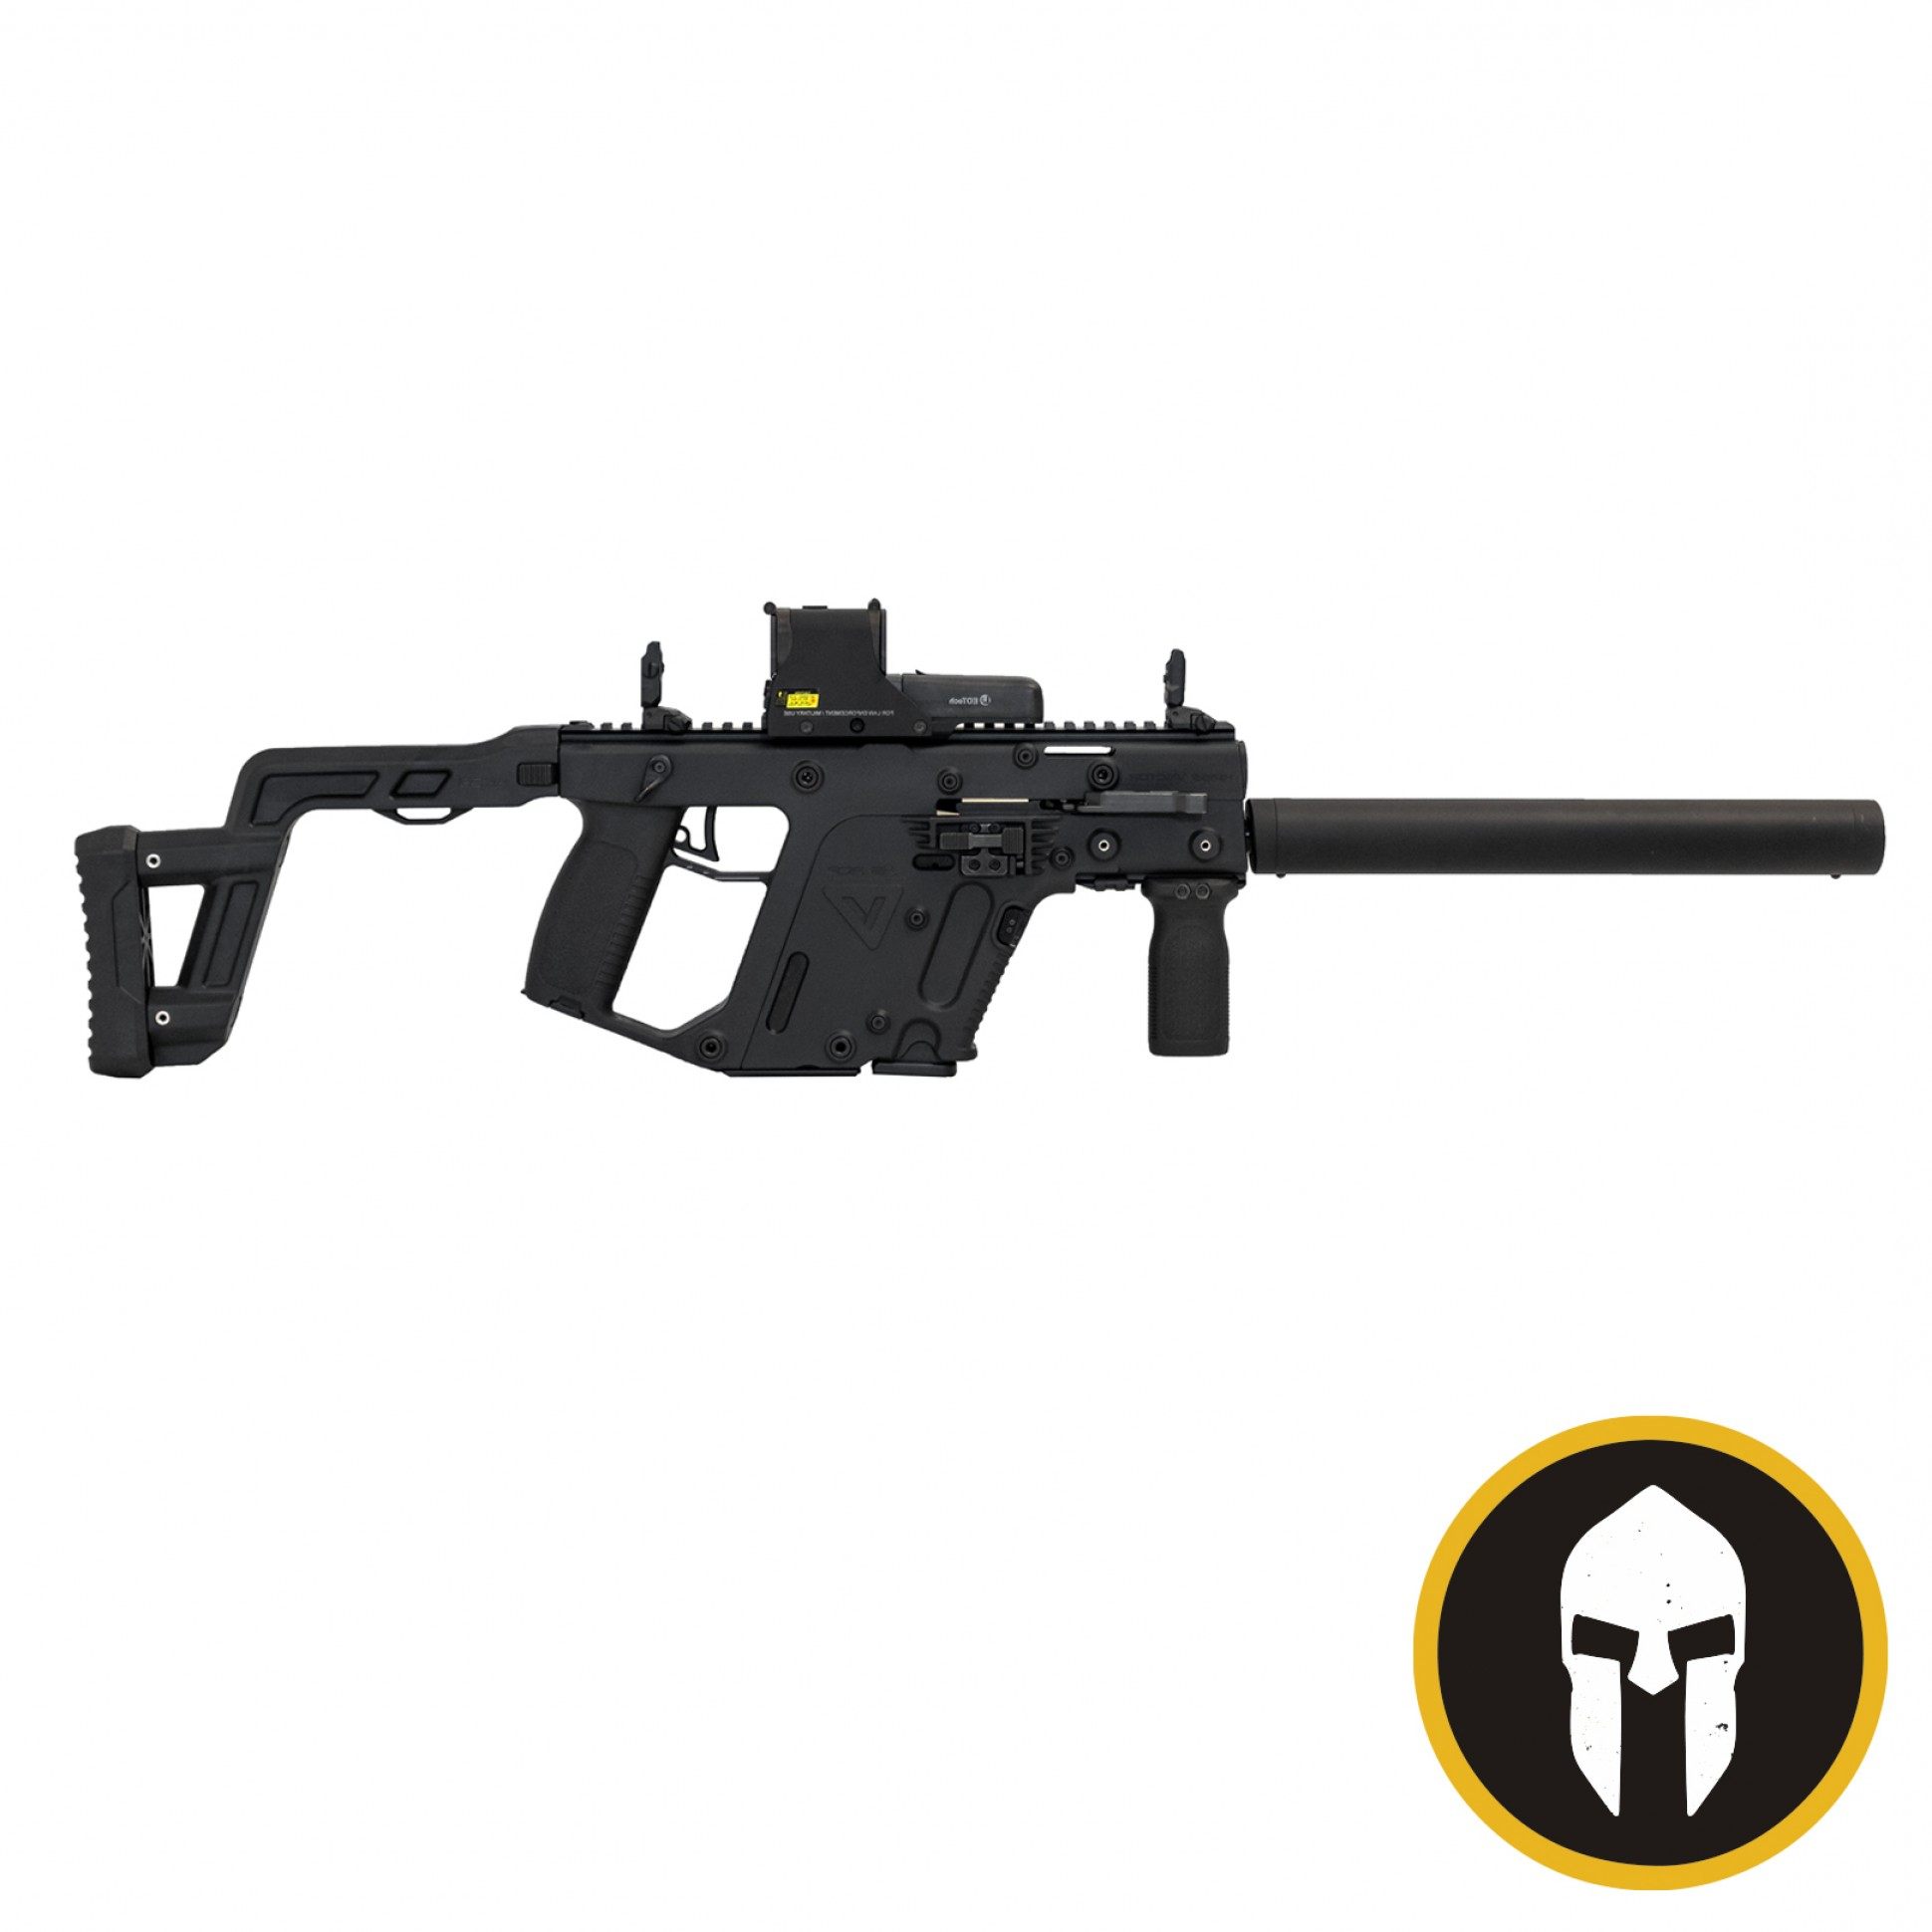 Kriss Vector 45ACP Carbine: Kriss Vector Carbine Acp With Eotech L